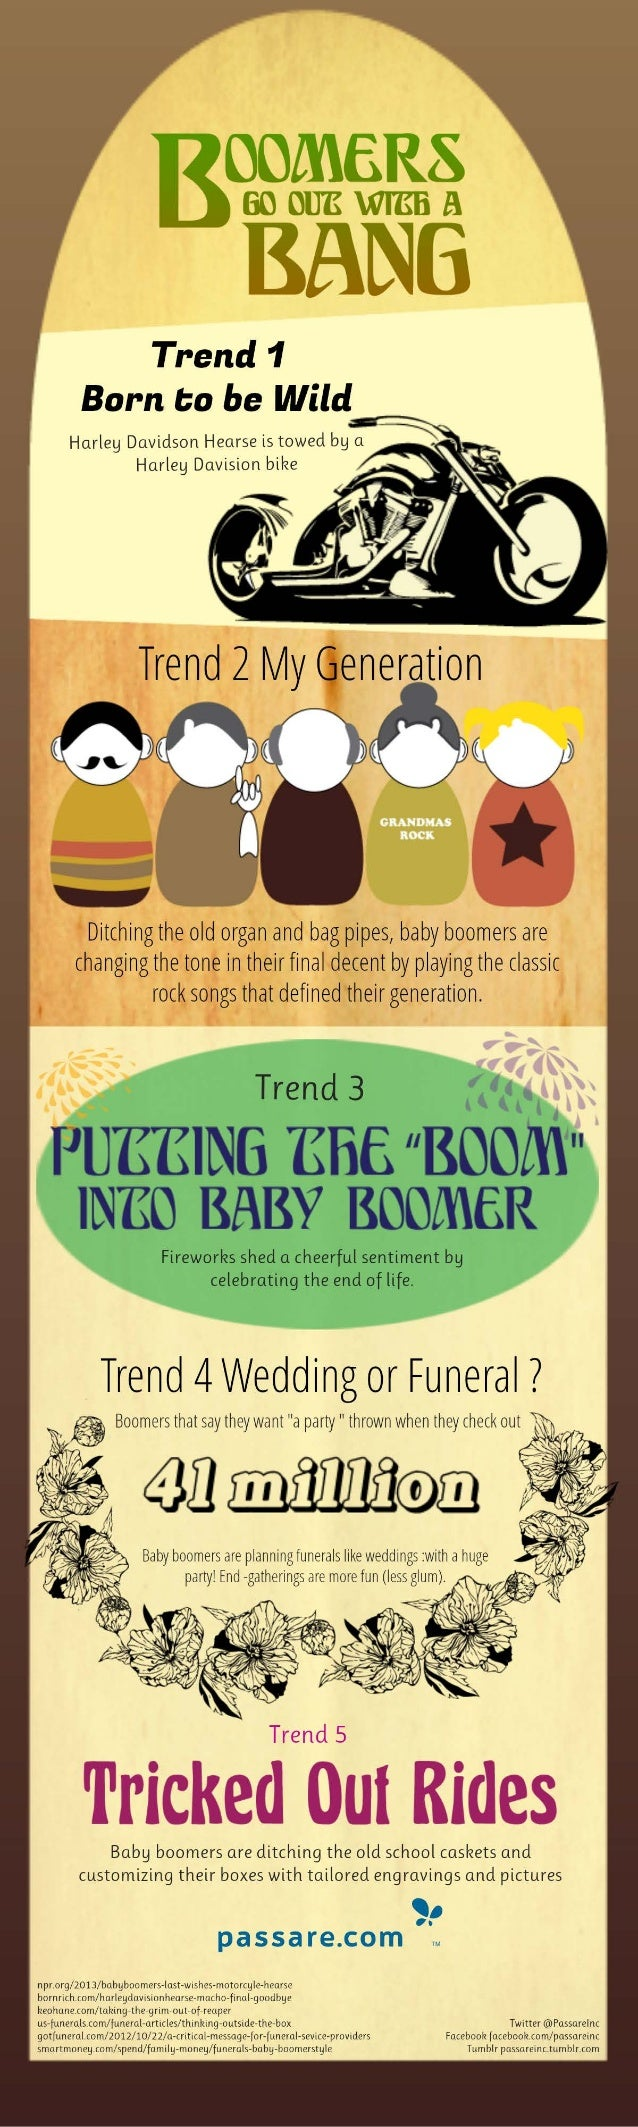 5 End-of-Life-Celebration Trends: Boomers Go Out With A Bang – Infographic